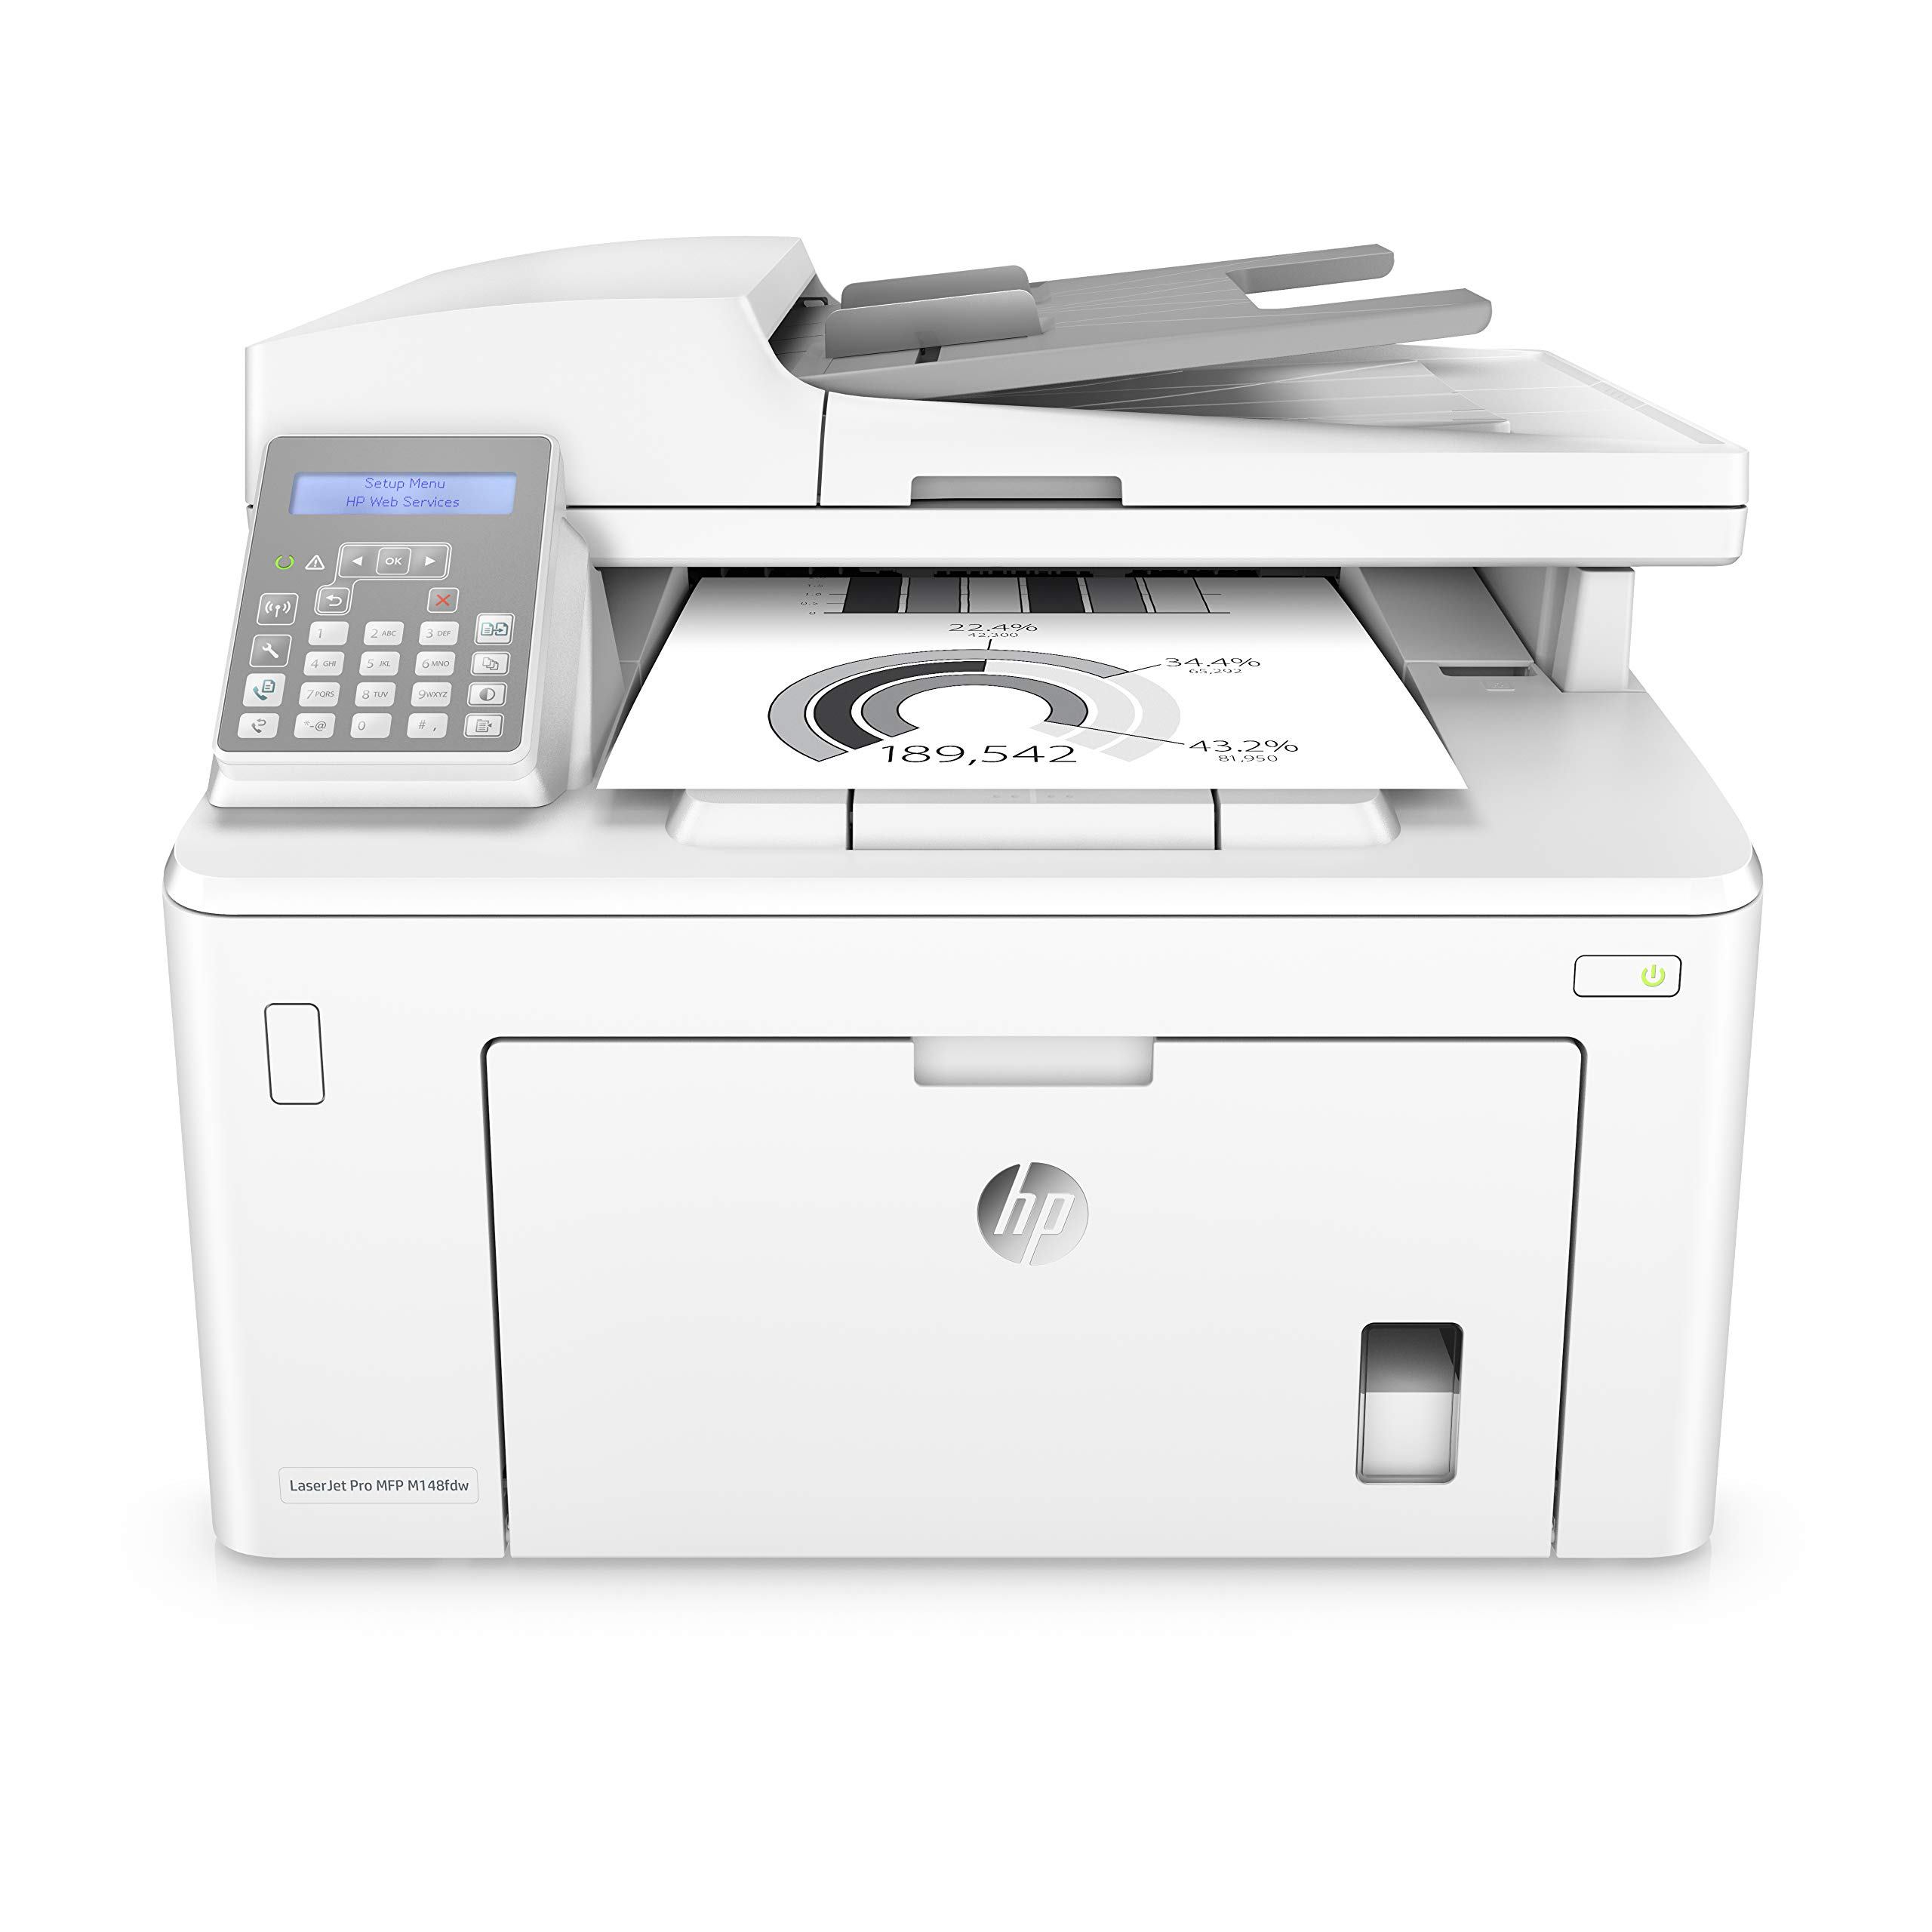 HP Laserjet Pro M148fdw All-in-One Wireless Monochrome Laser Printer with Auto Two-Sided Printing, Mobile Printing, Fax & Built-in Ethernet (4PA42A) by HP